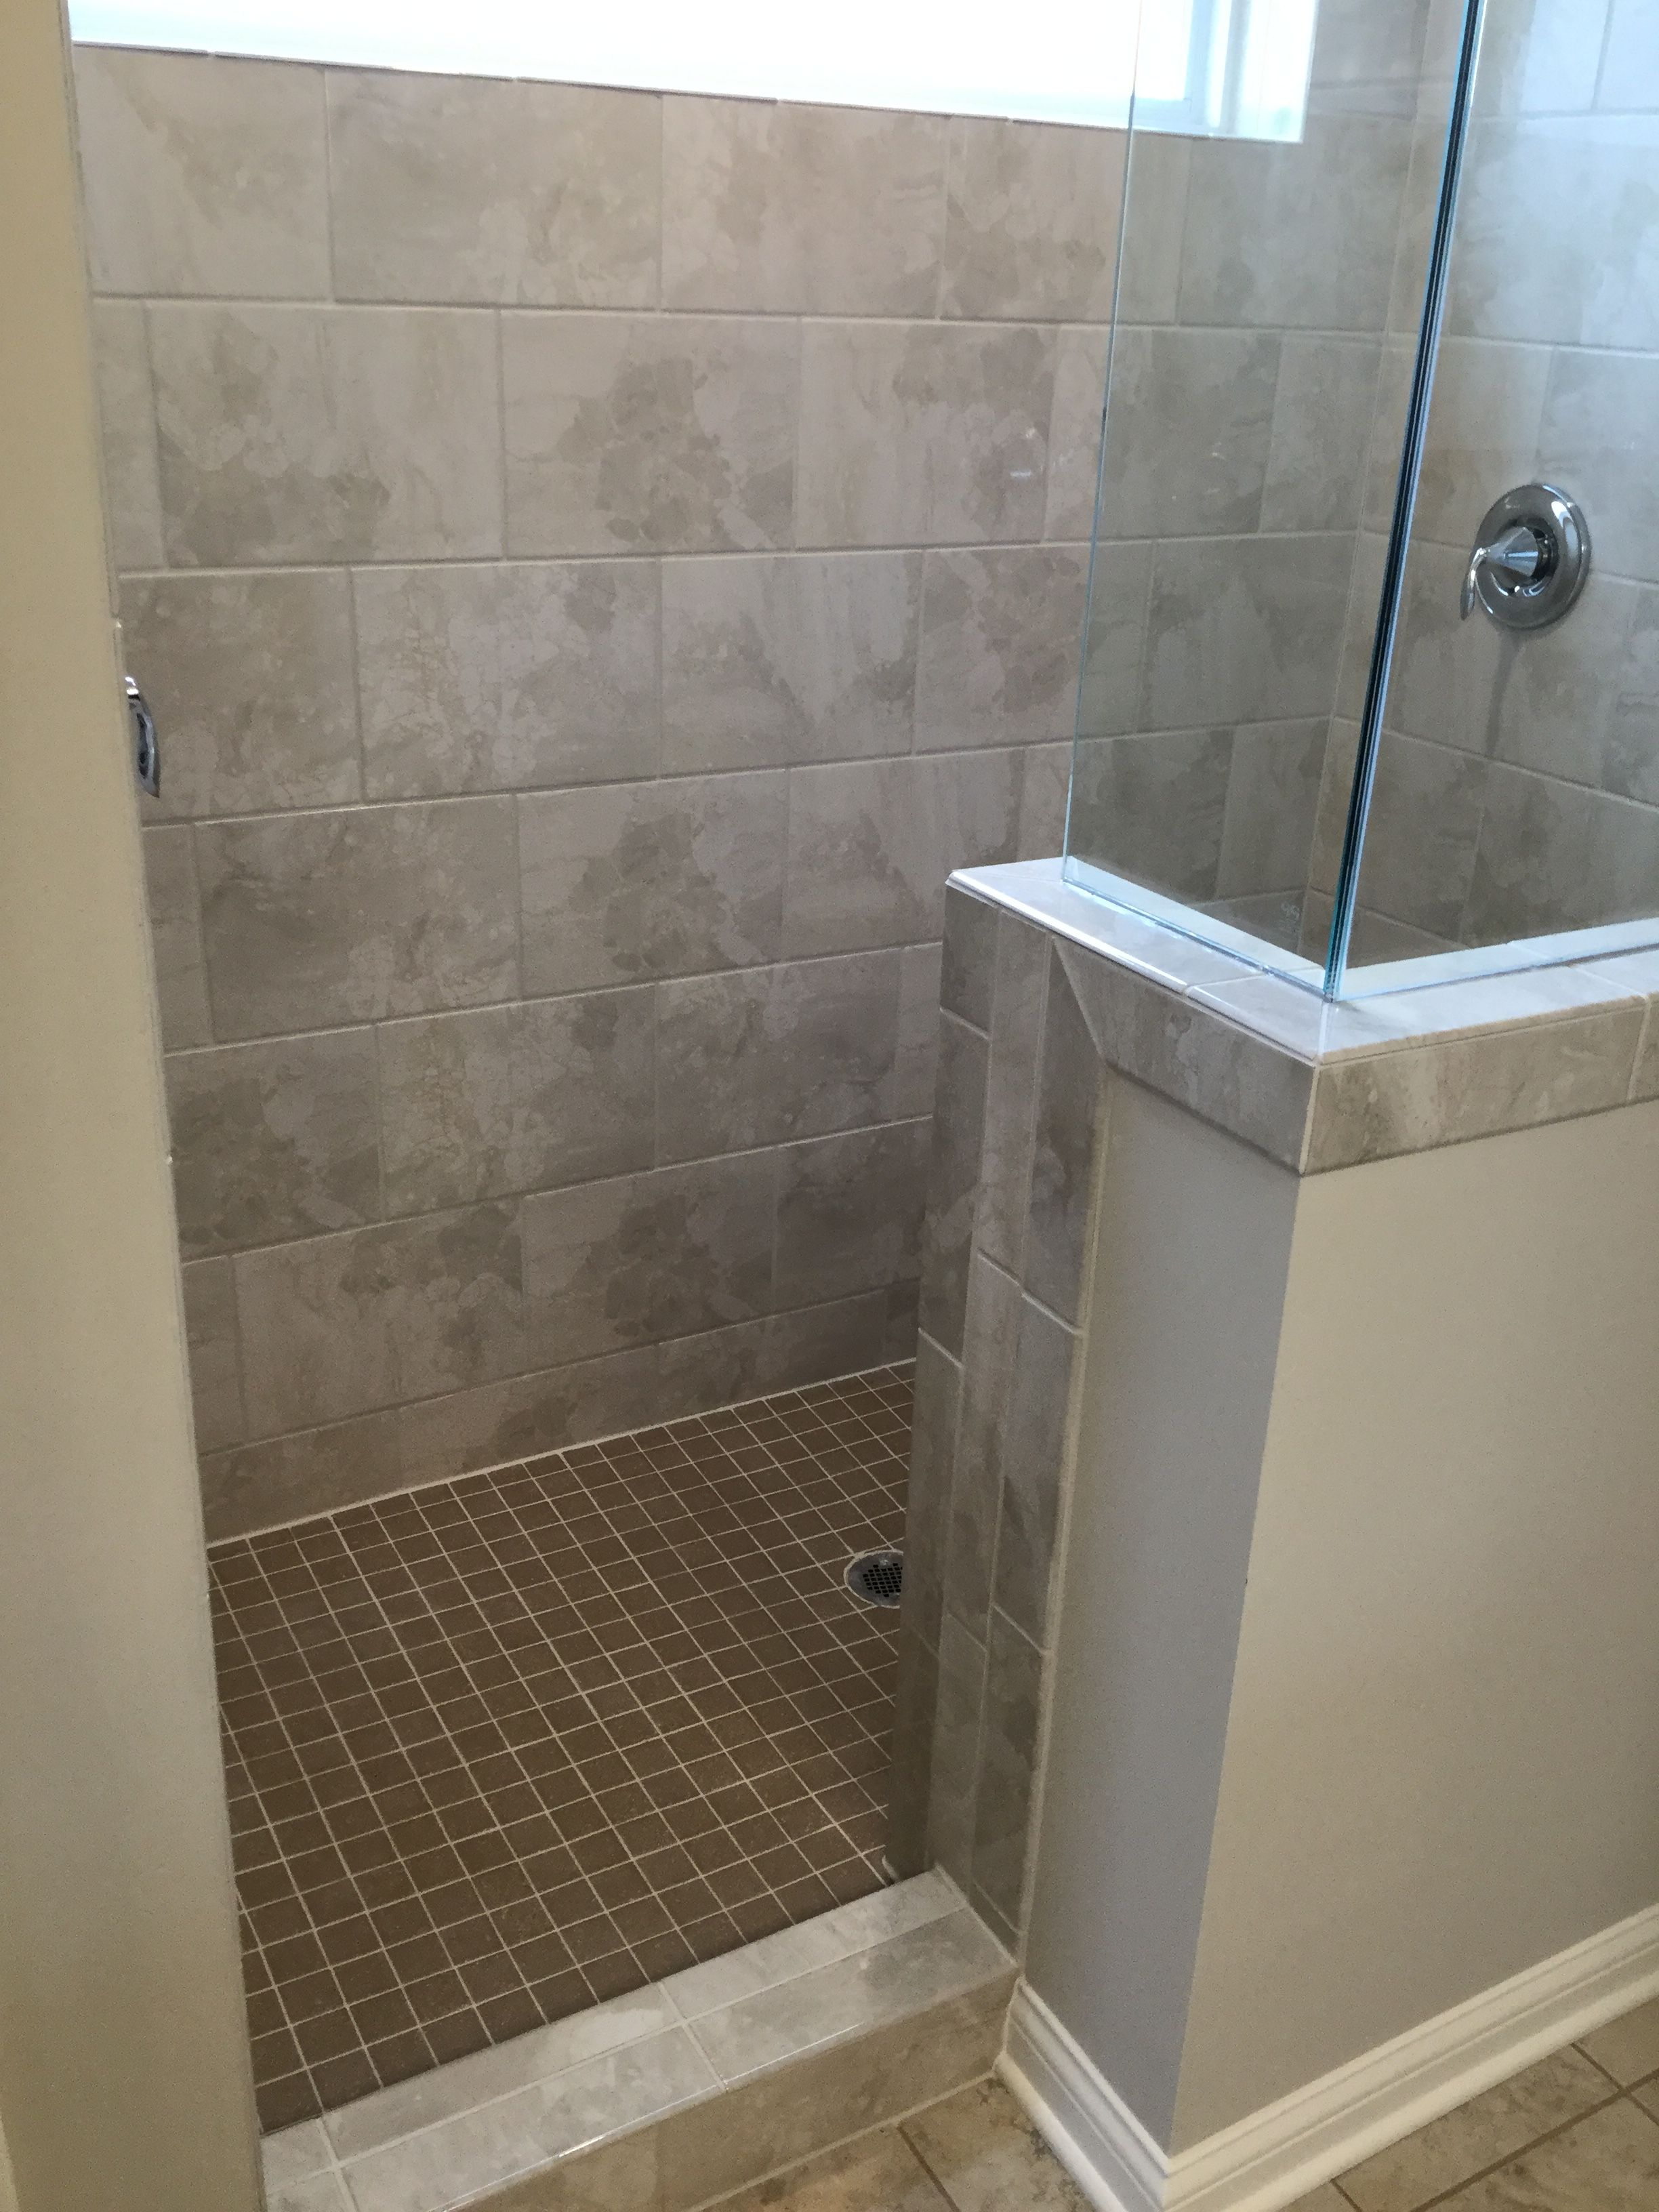 Marble Falls 10x14 Crystal Sands Wall Tile Installed Brick Joint Wall Tiles Tile Installation Room Design